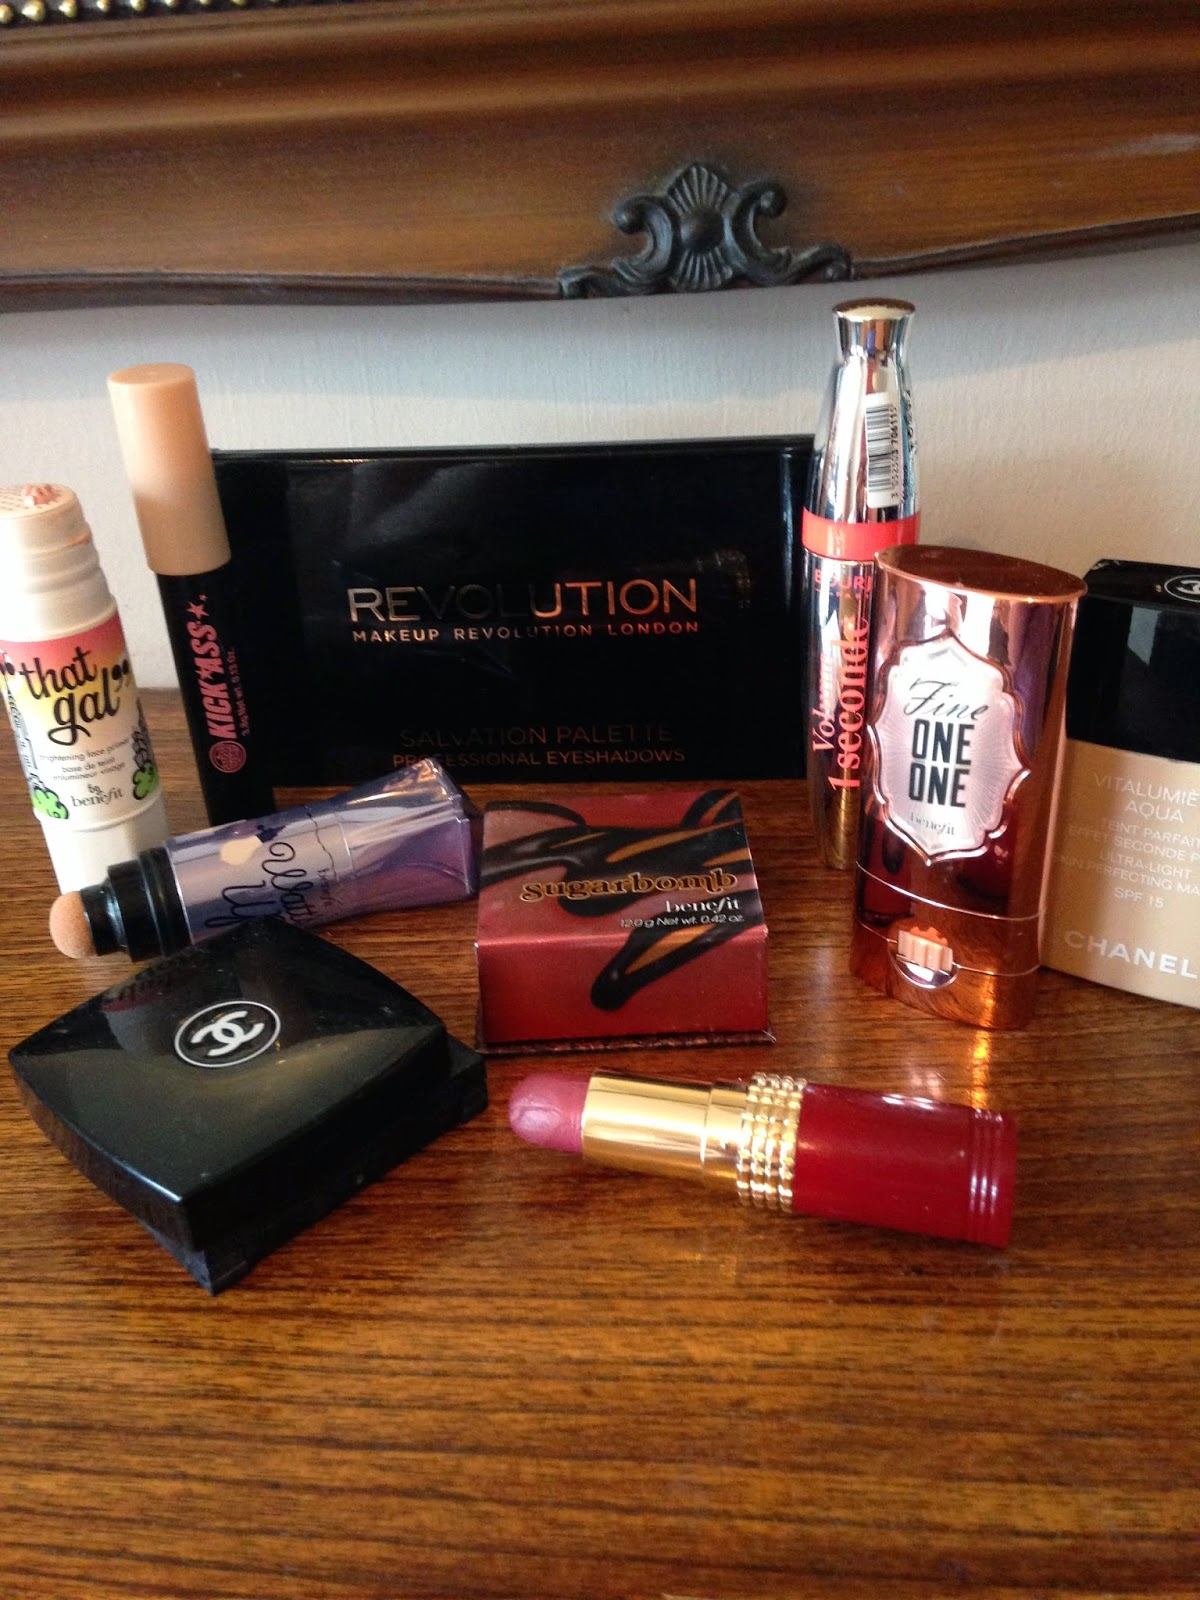 Makeup Revolution; Benefit; Chanel; Elizabeth Arden; Bourjois; Soap & Glory